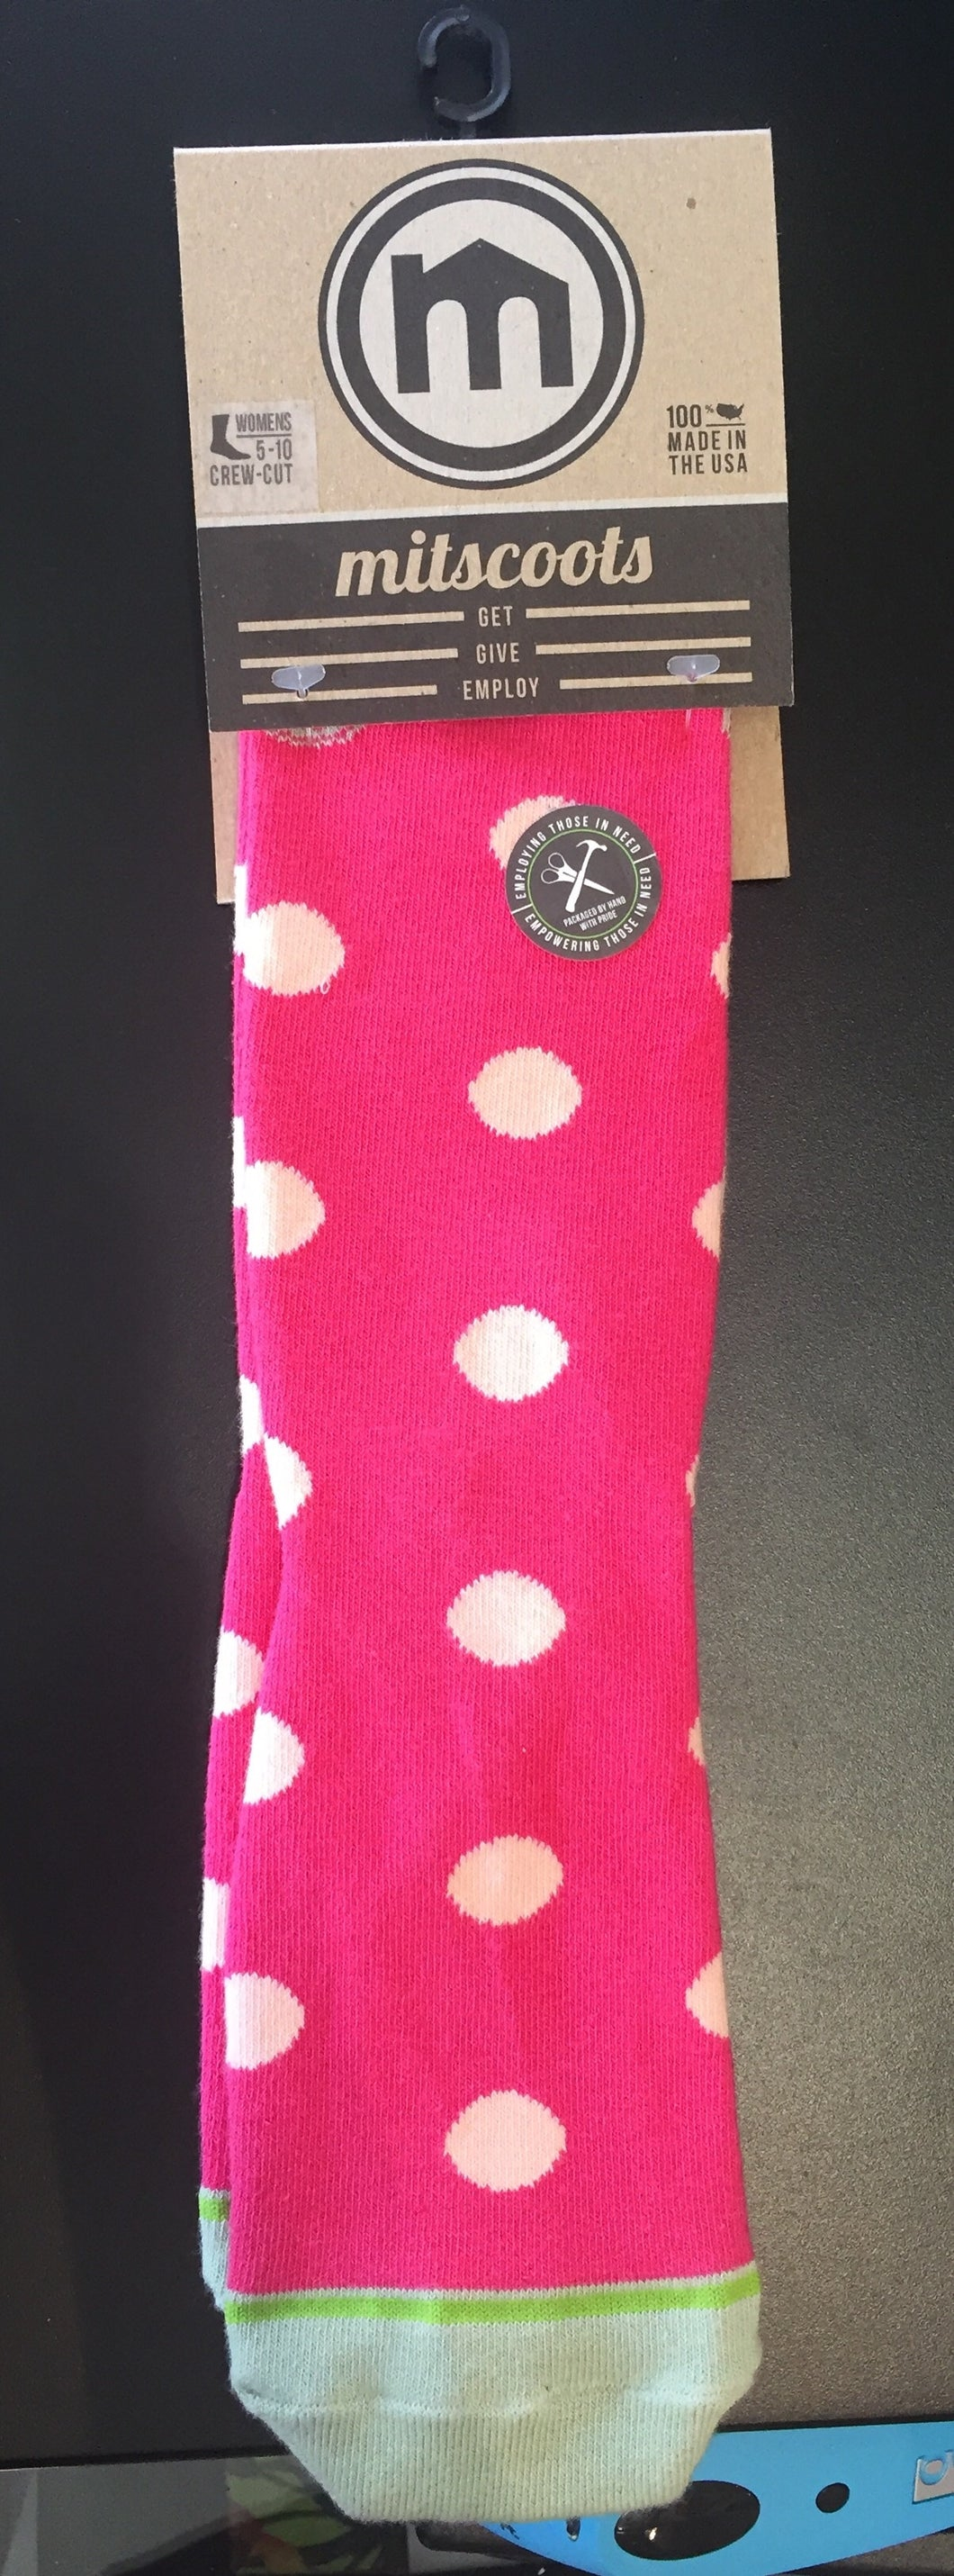 Mitscoots Polka Dot women's